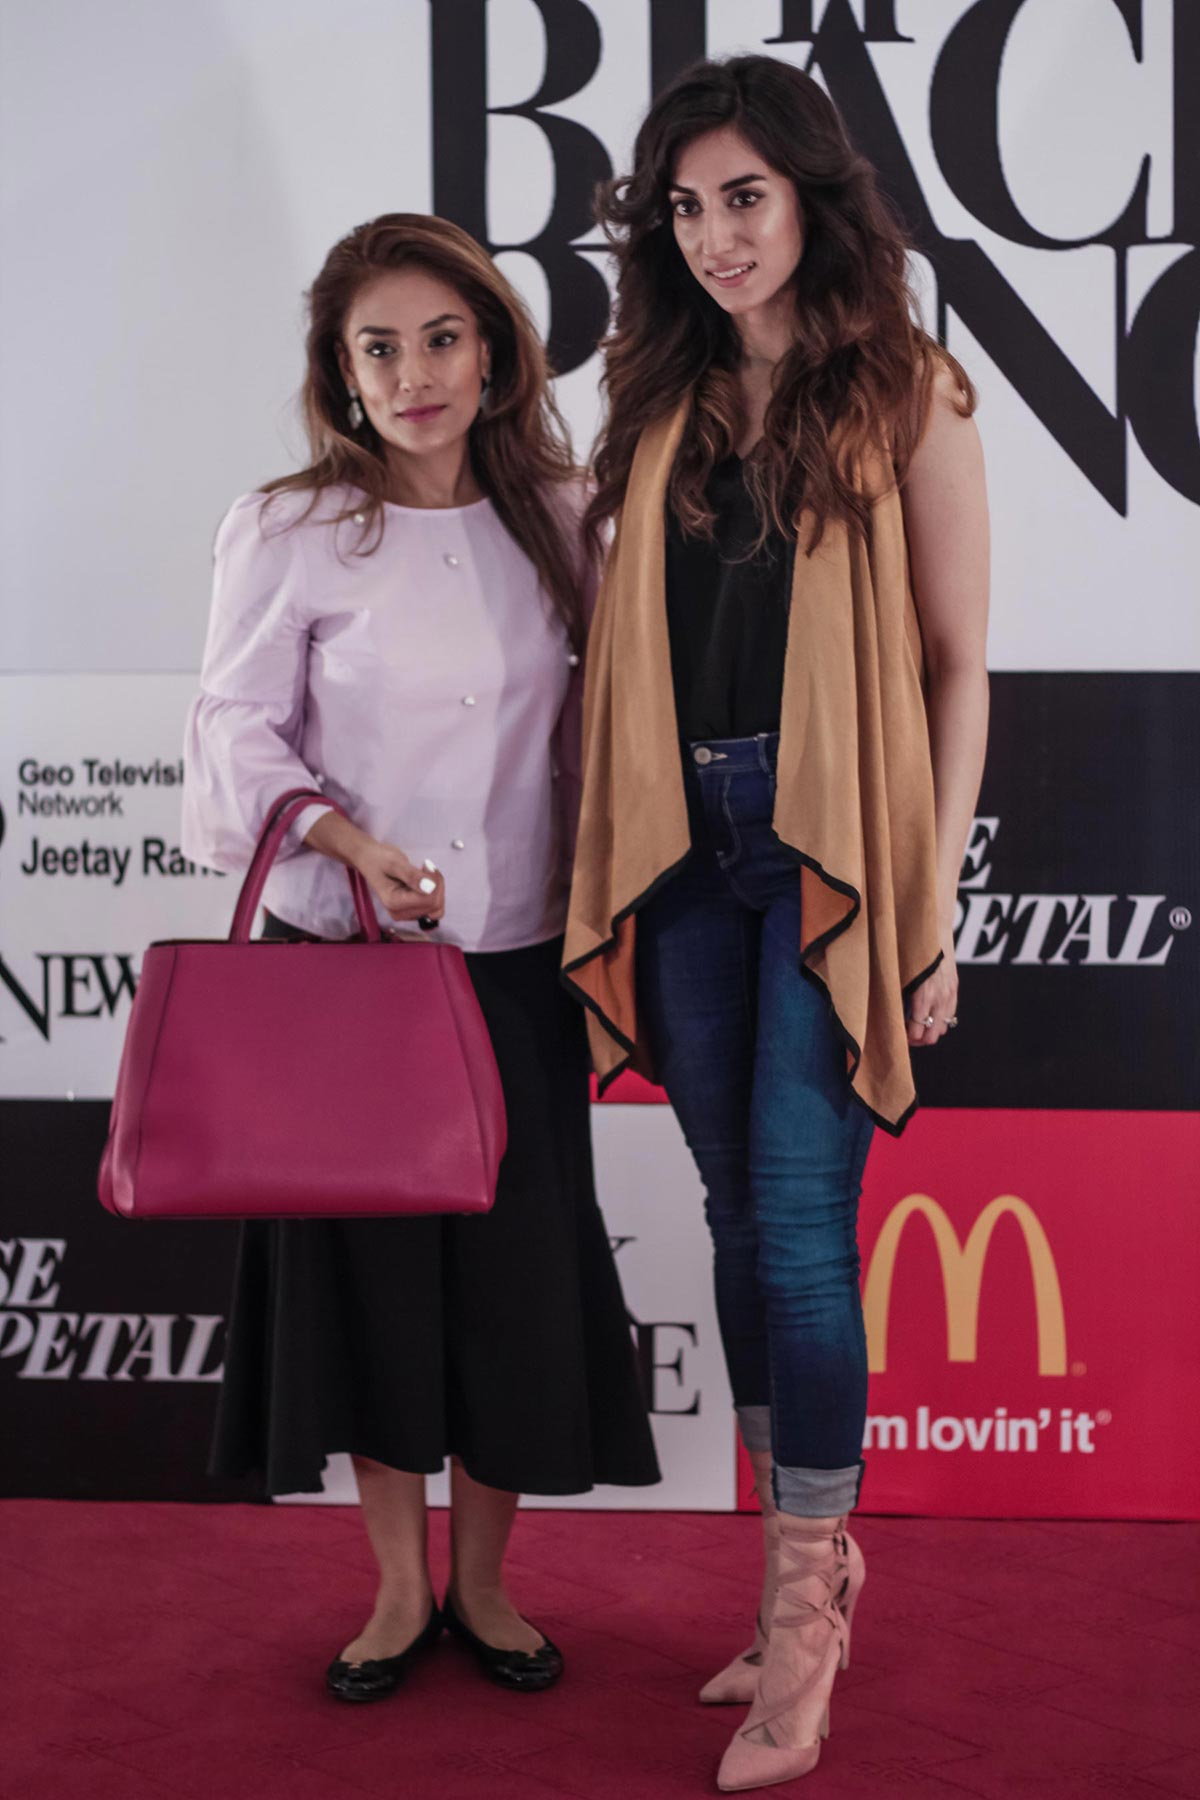 Zehra Gilani and Sahar Noon